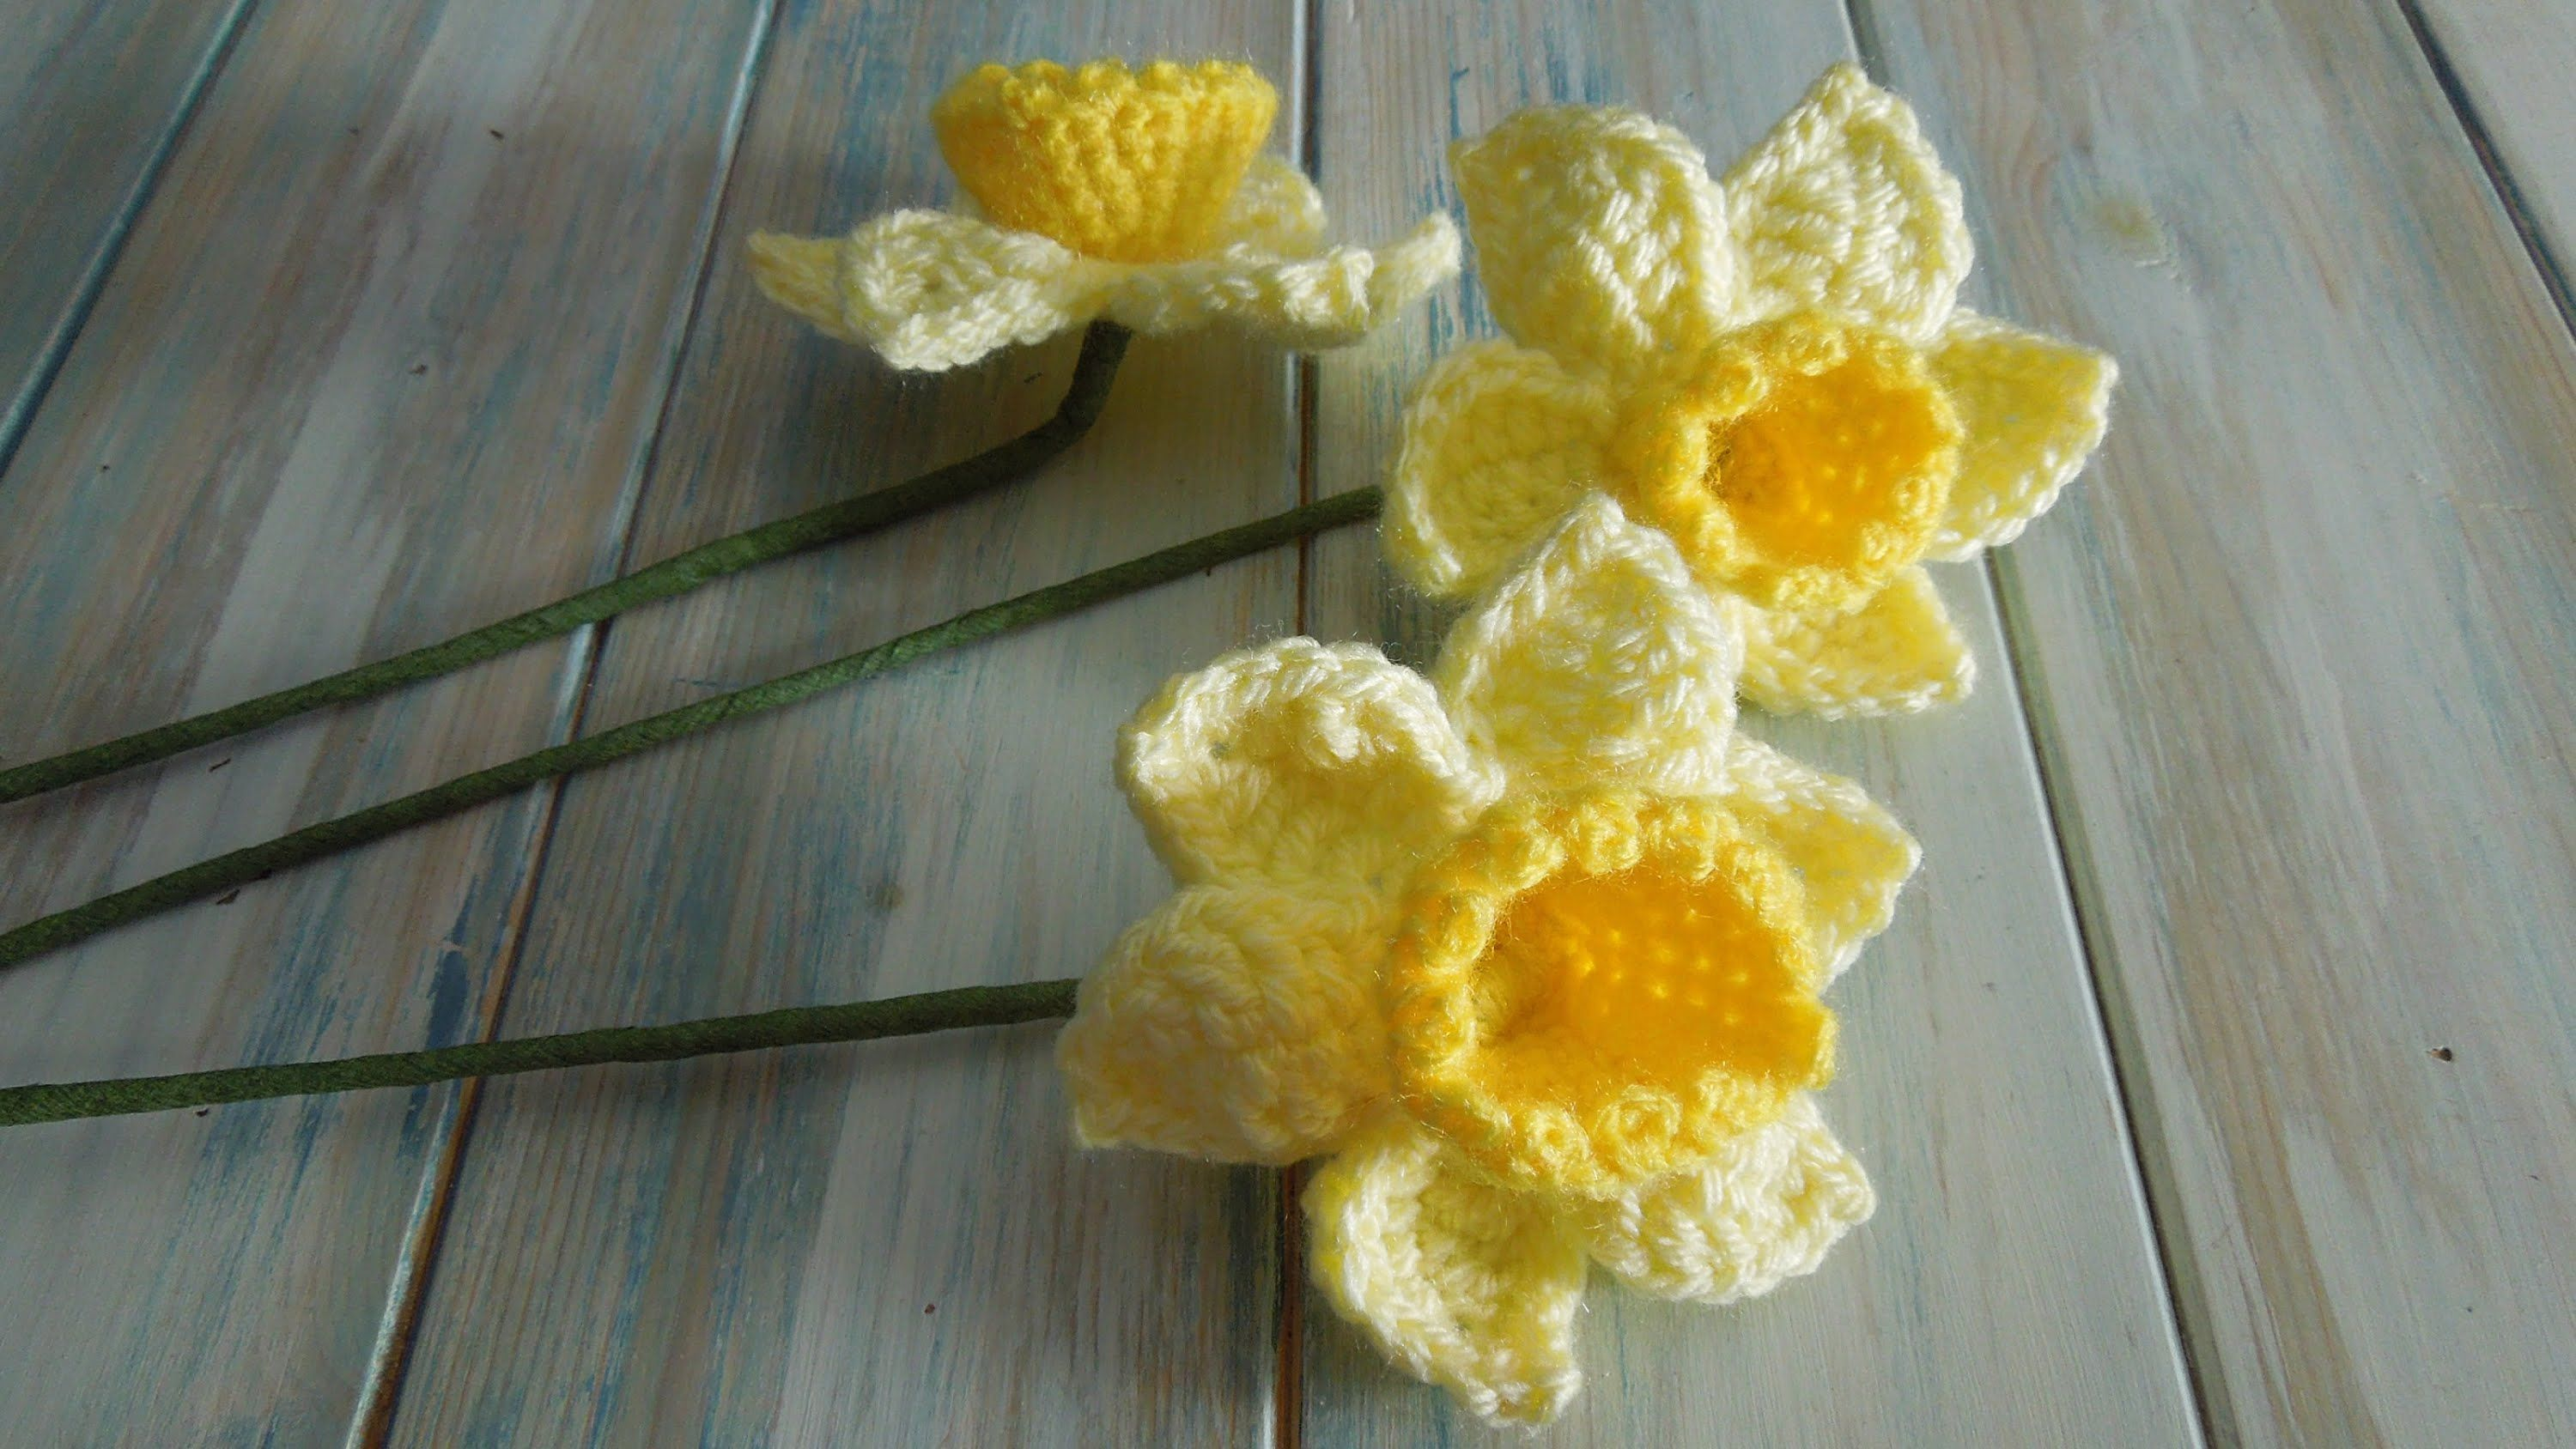 Free 3d Daffodils Granny Square Crochet Pattern Rose Flower Diagram Flowers 4 How To Daffodil Video Tutorial